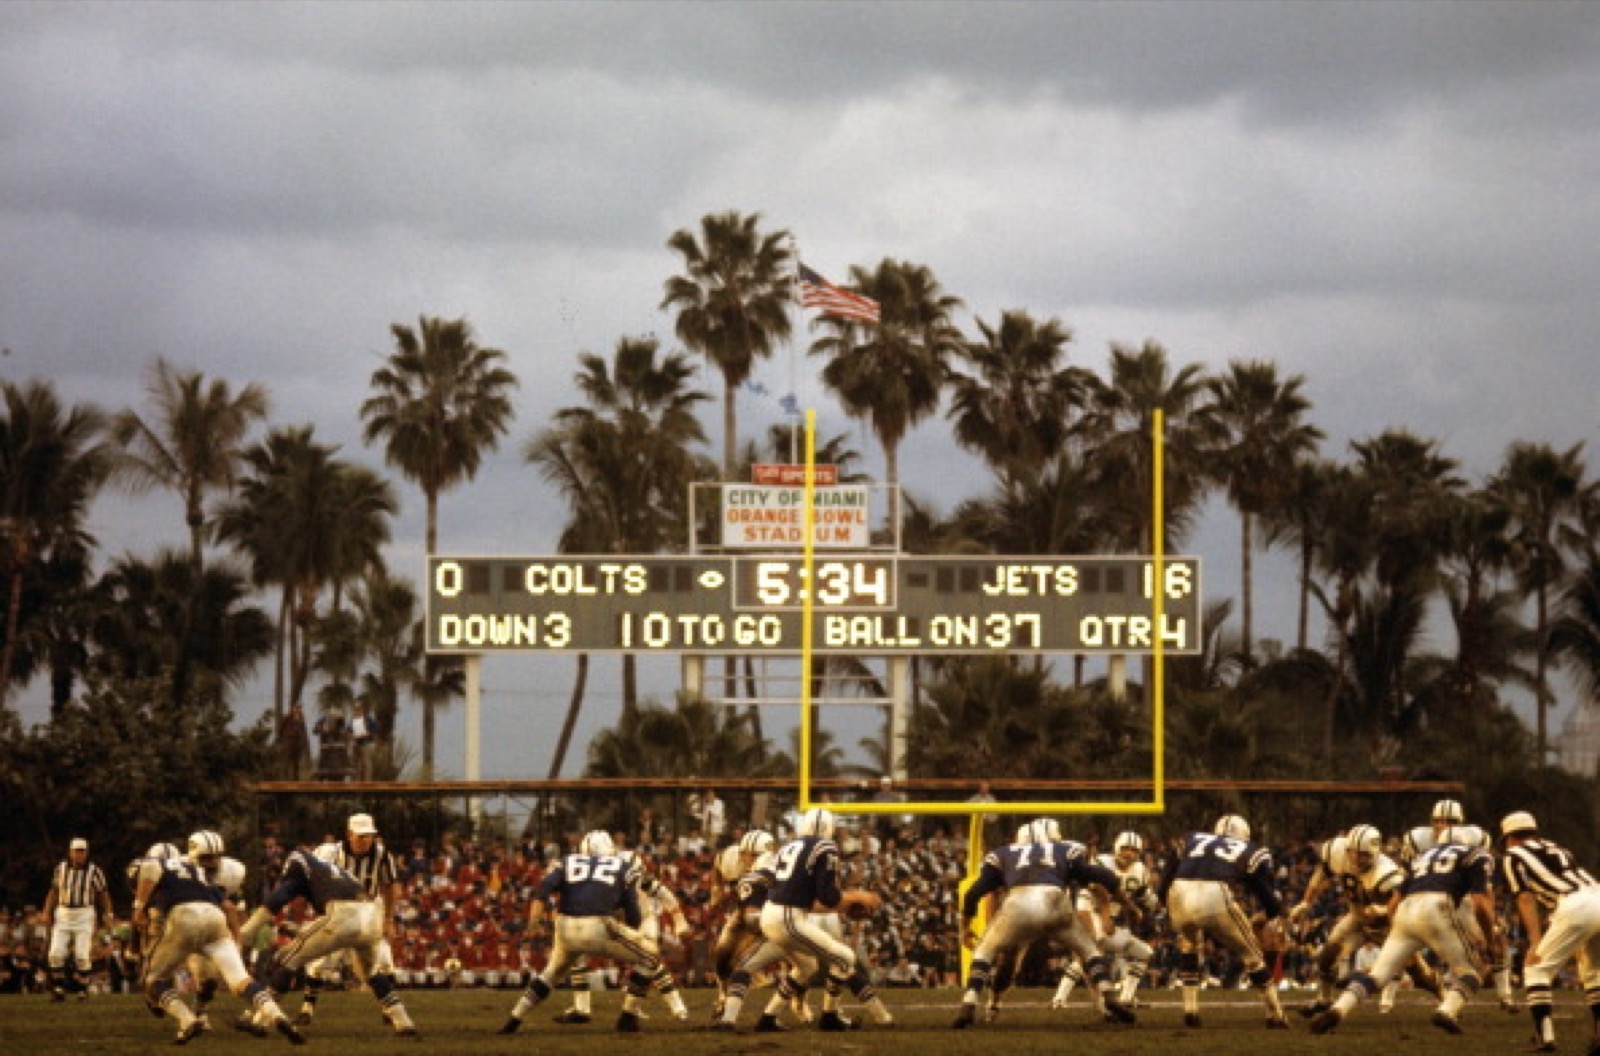 The Best of 48 Super Bowls